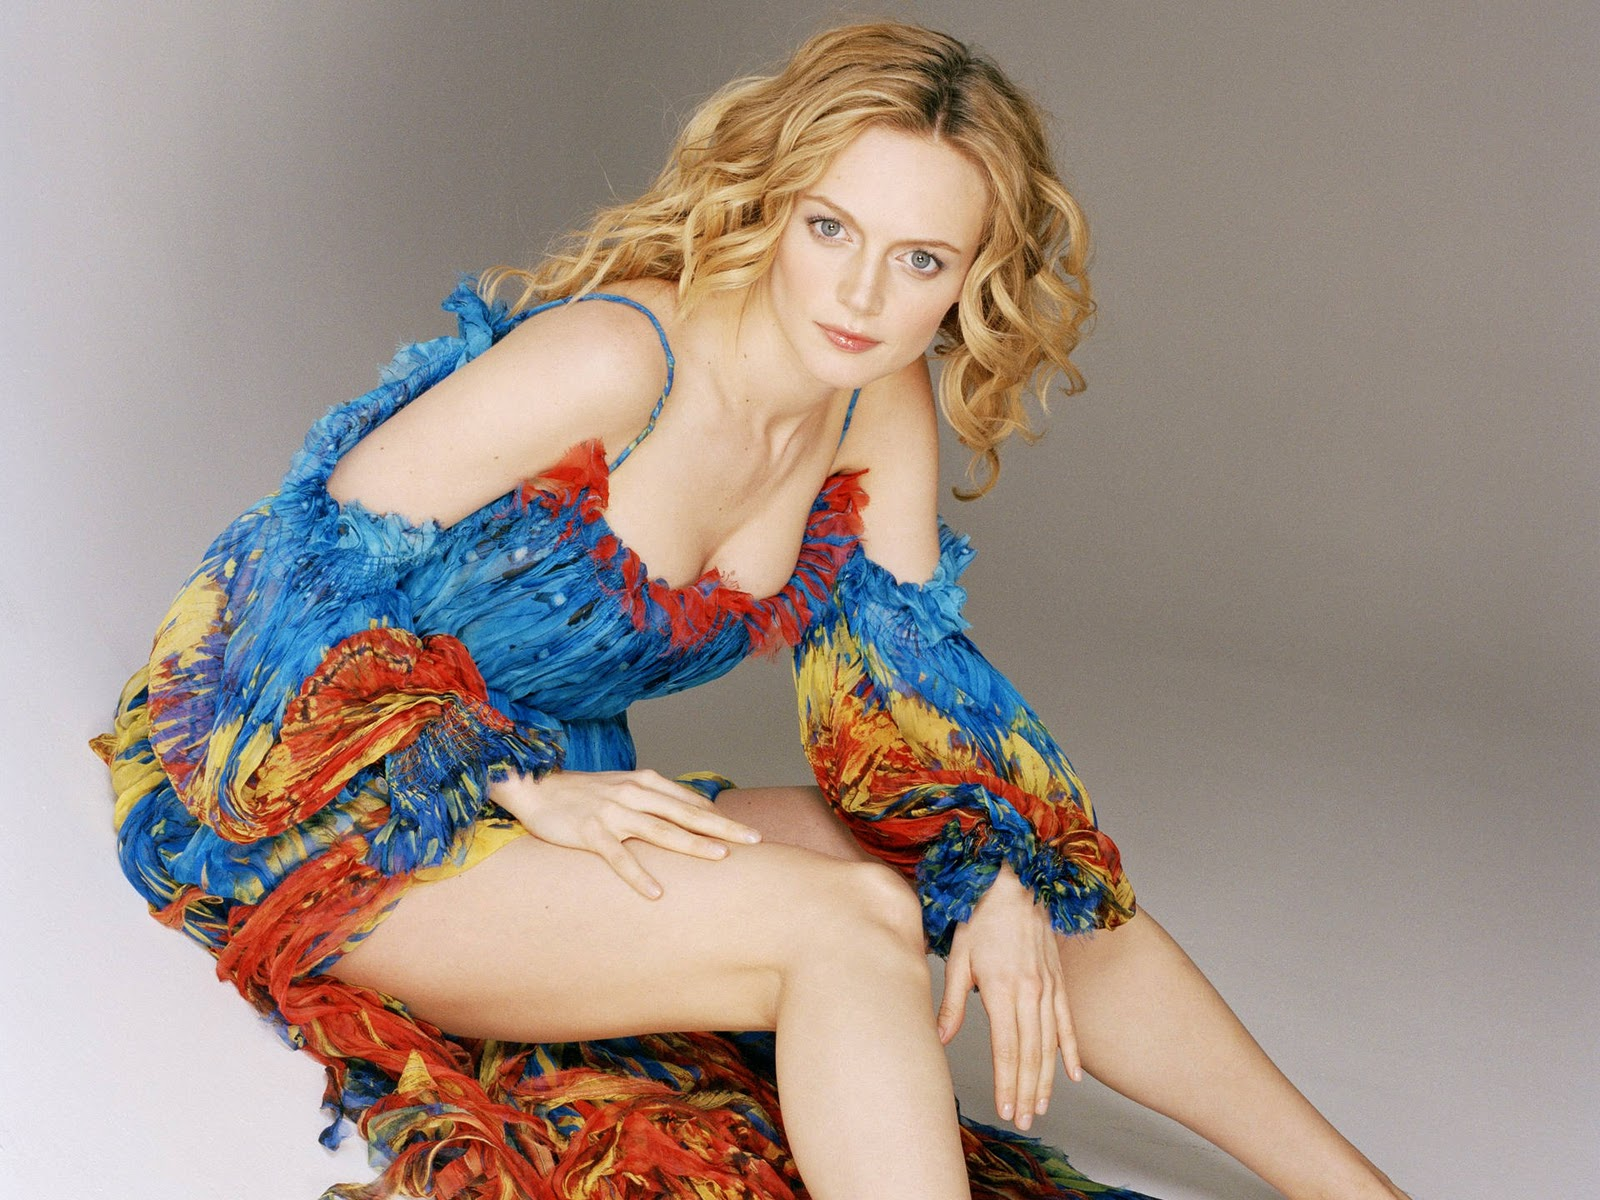 Google sampah the hot heather graham is an american actress and model